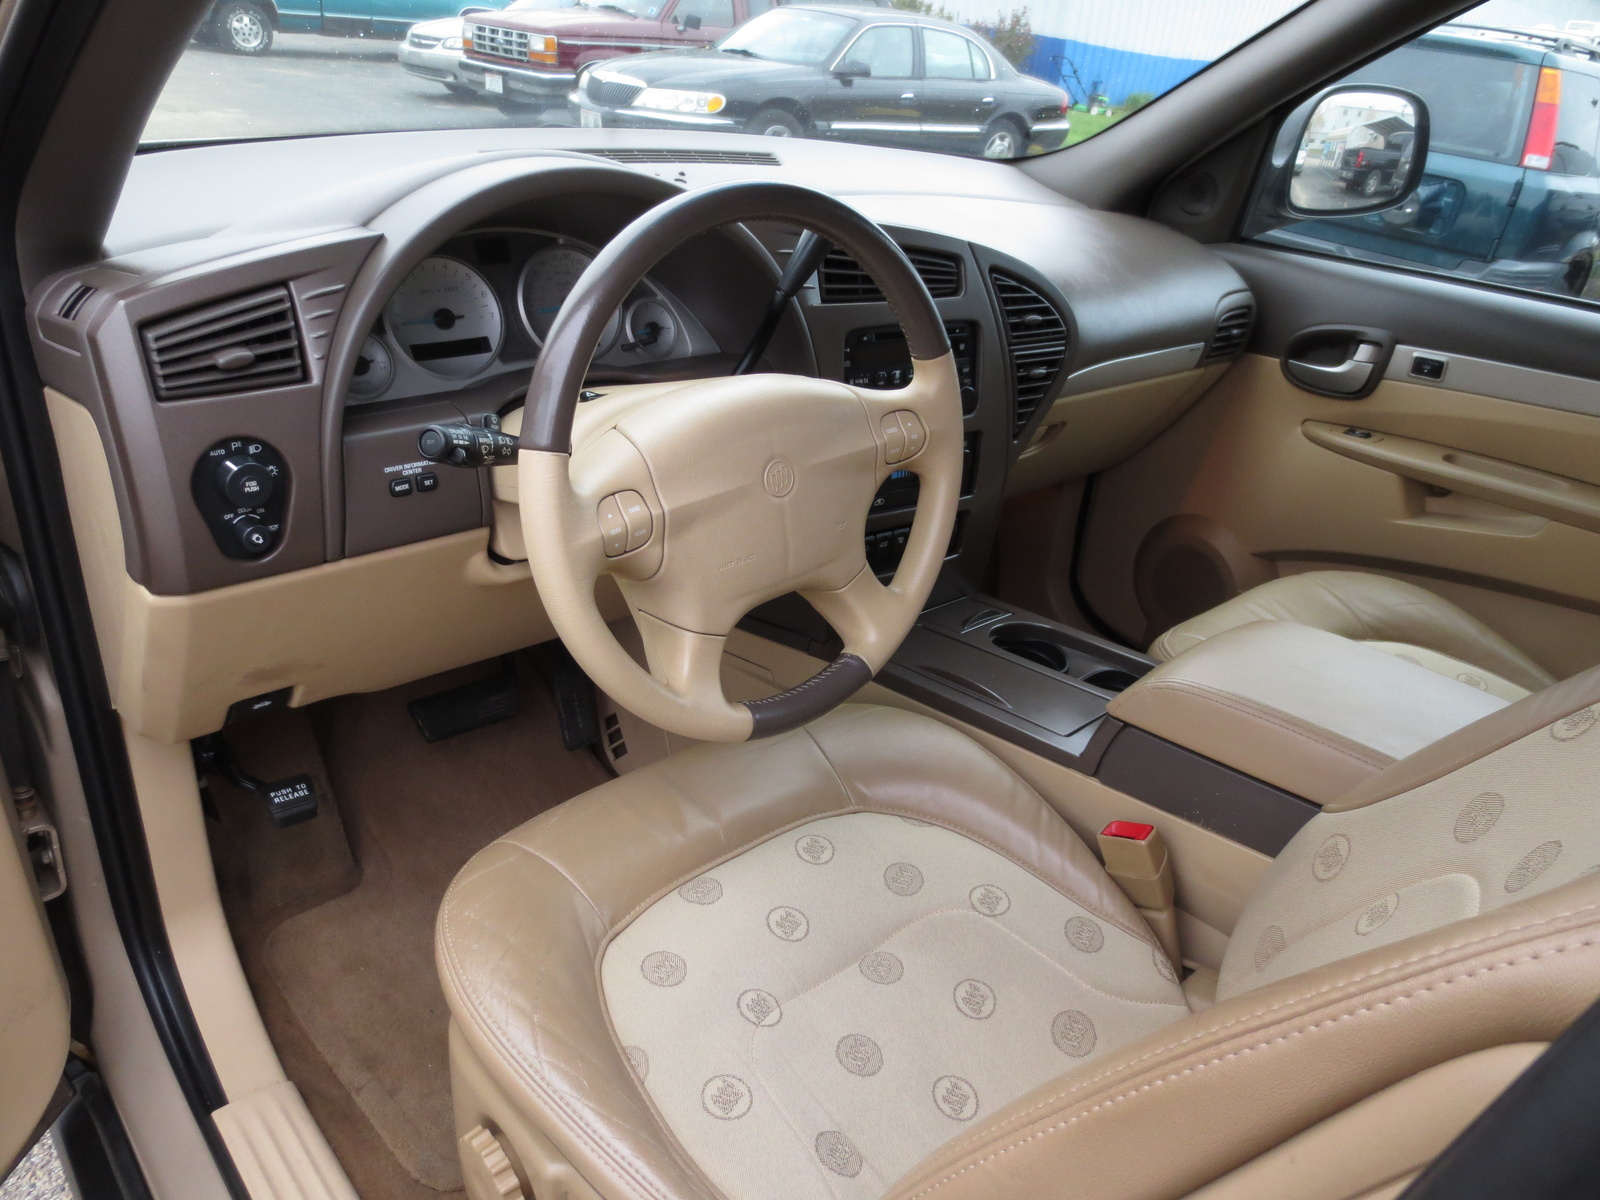 Buick Rendezvous Cx Pic on 2007 Buick Lacrosse Rate